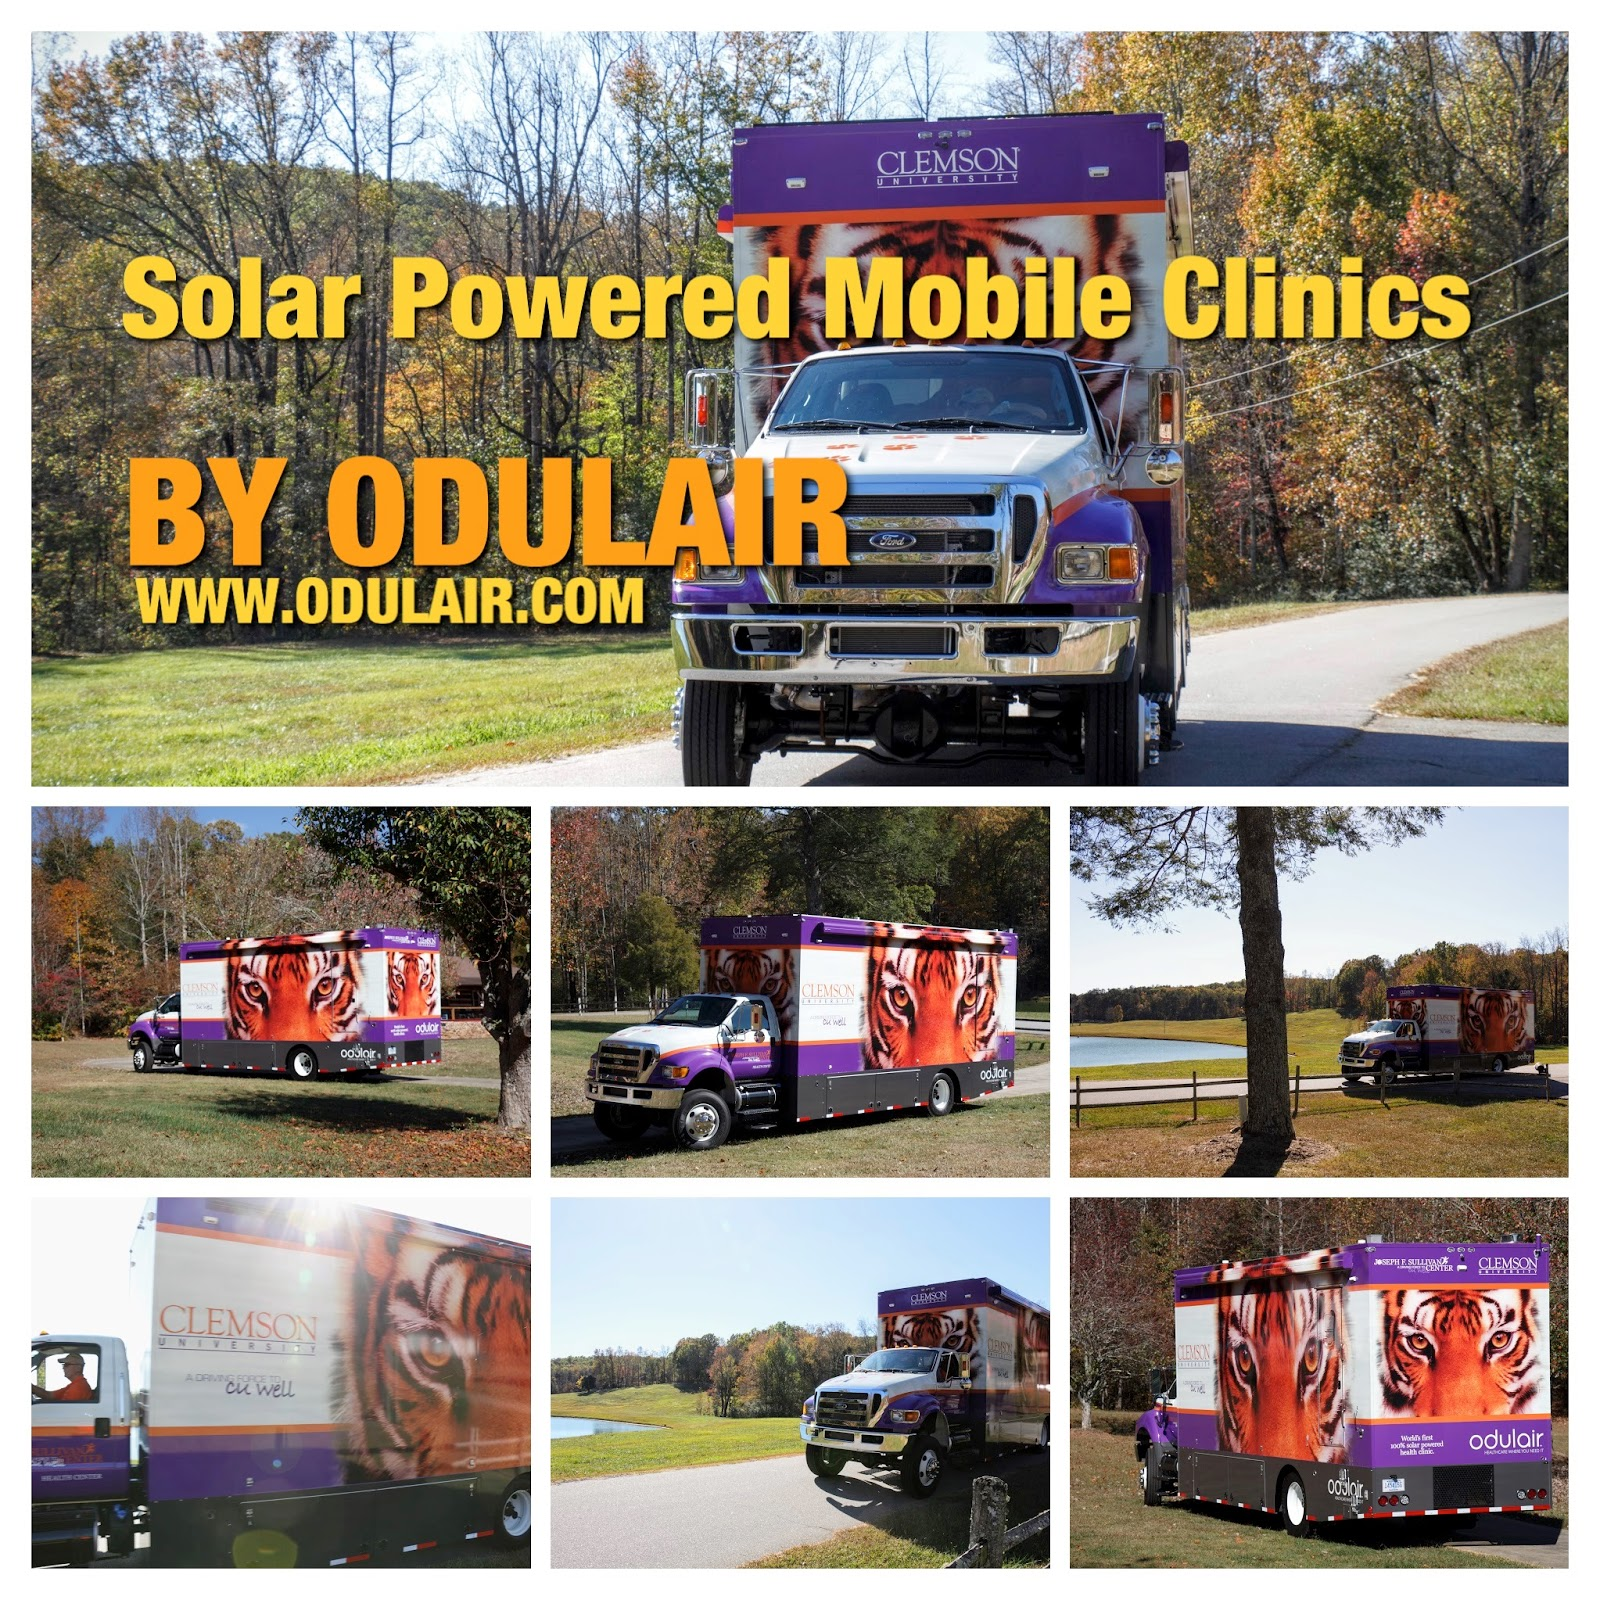 Mobile Clinics ODULAIR: Solar Powered Mobile Clinics for Sale